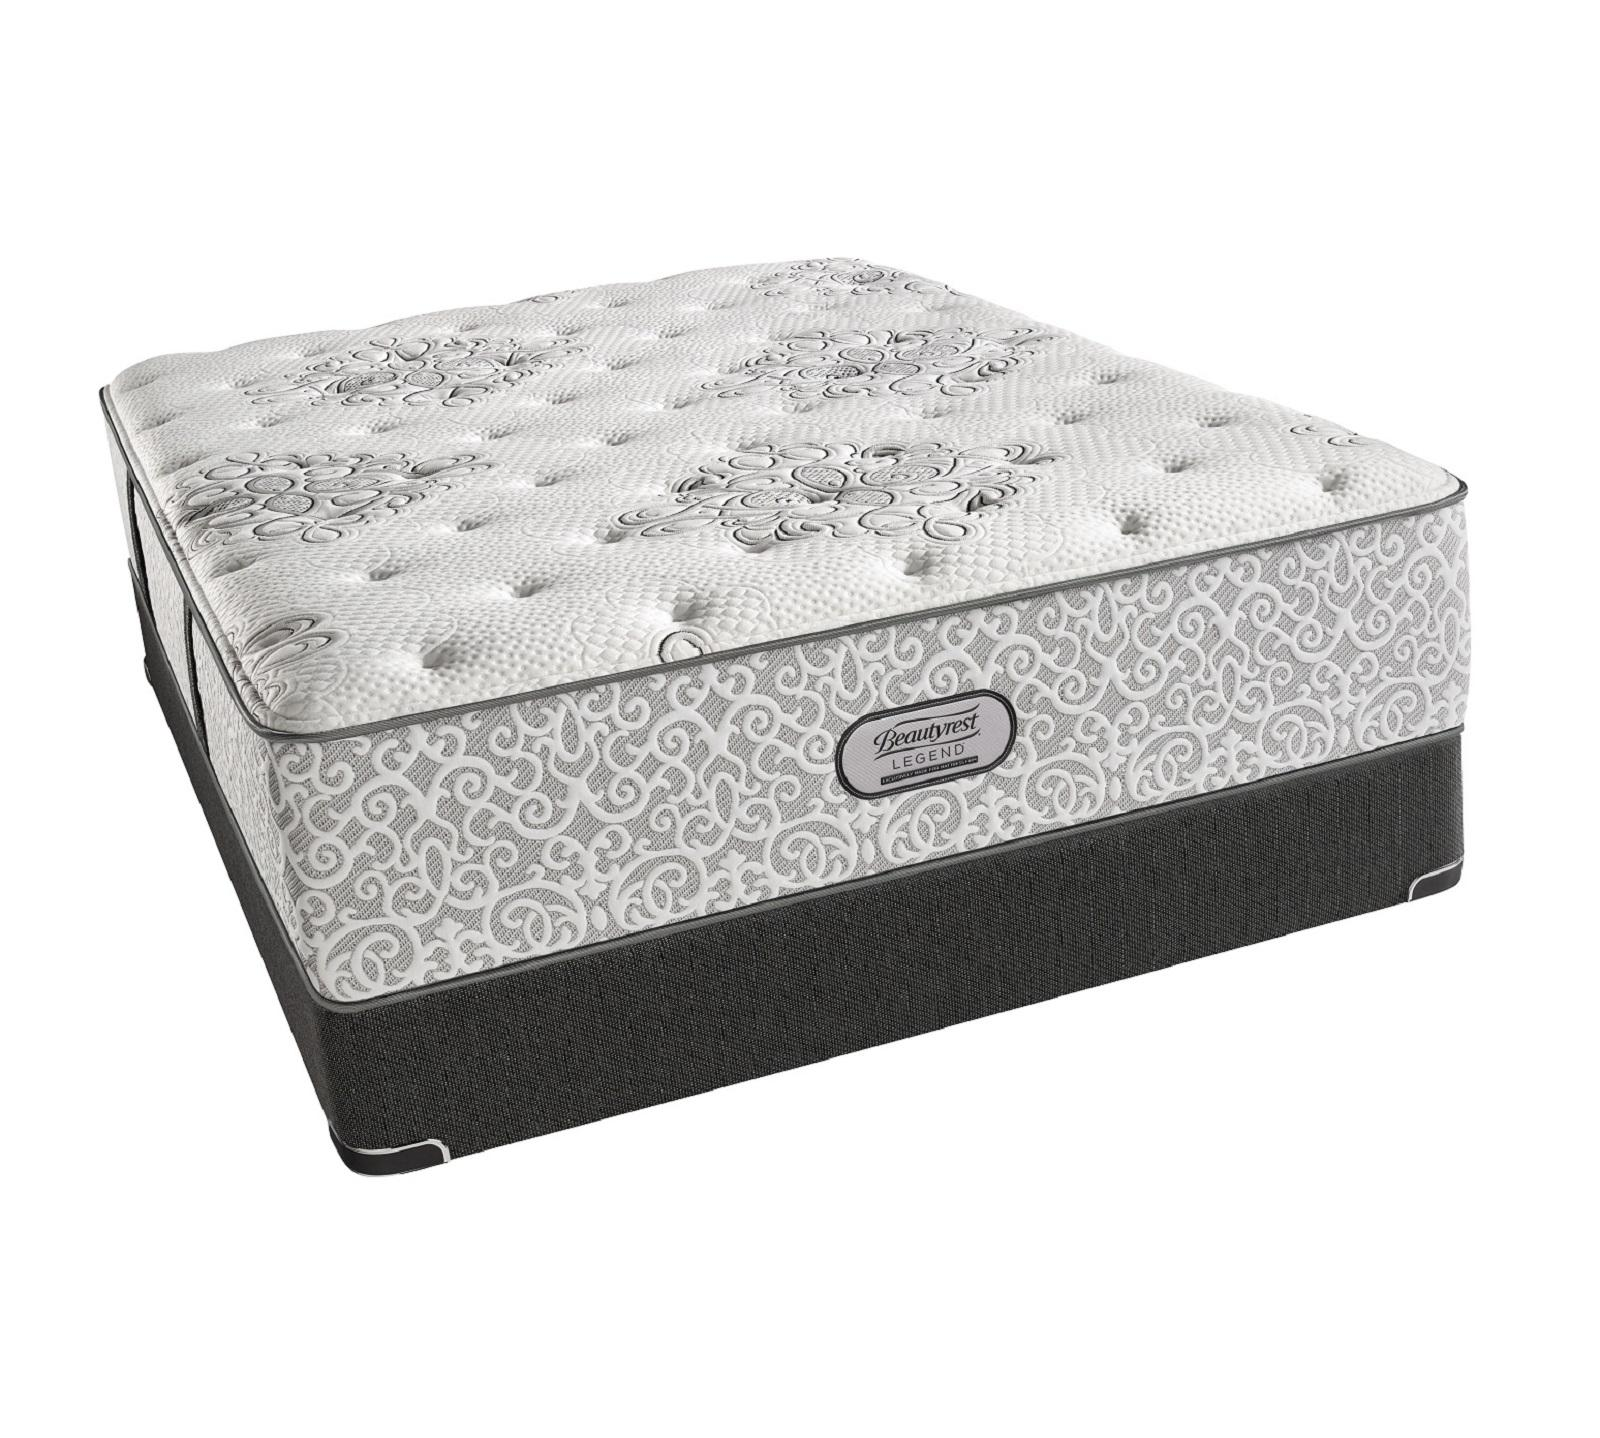 "Legend Winward 15 5"" Luxury Firm Mattress"